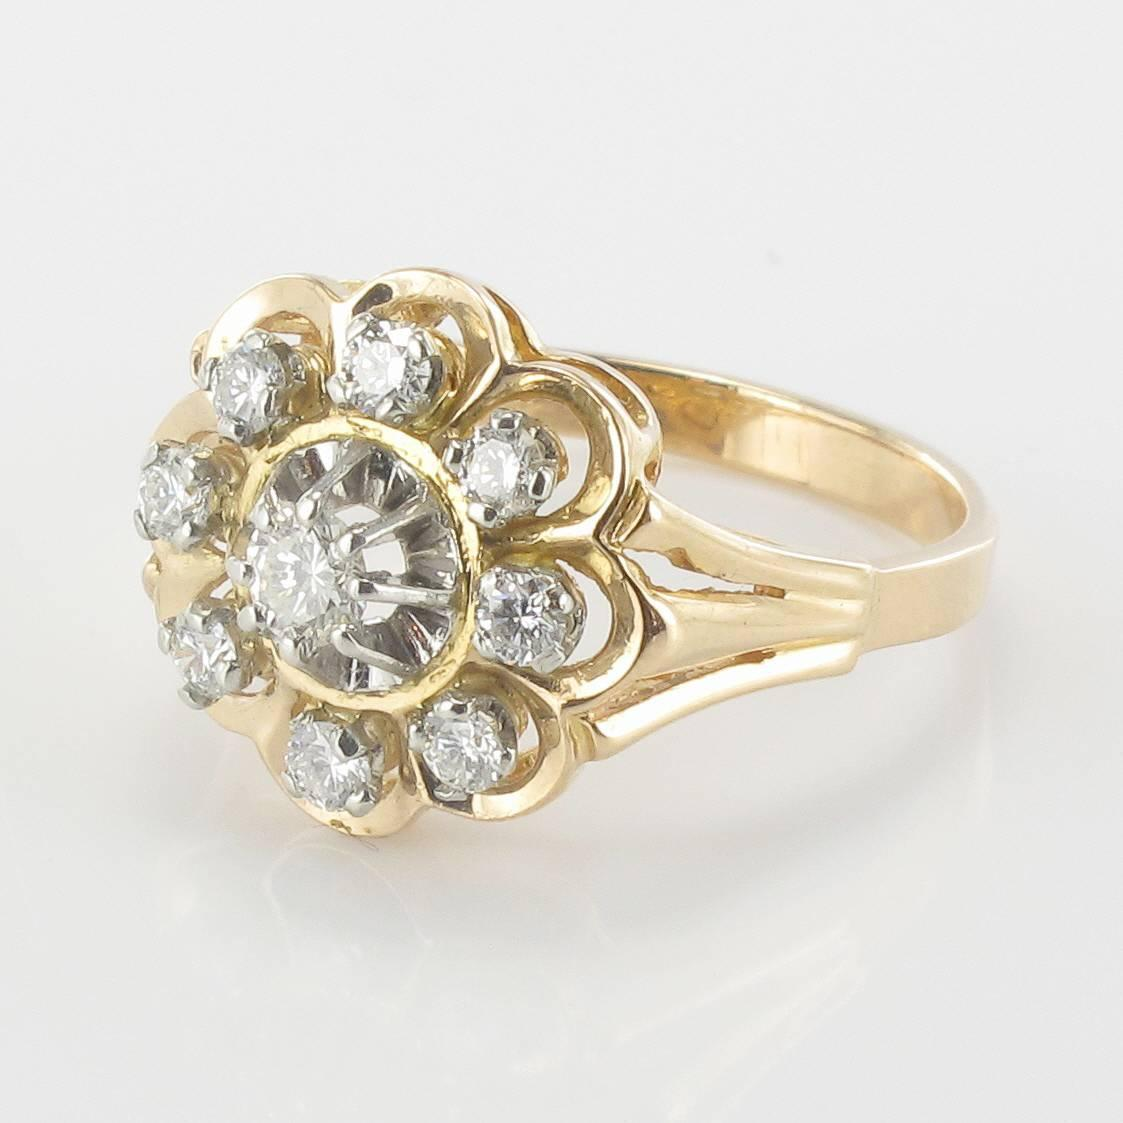 1960s French Diamond Gold Platinum Ring For Sale at 1stdibs